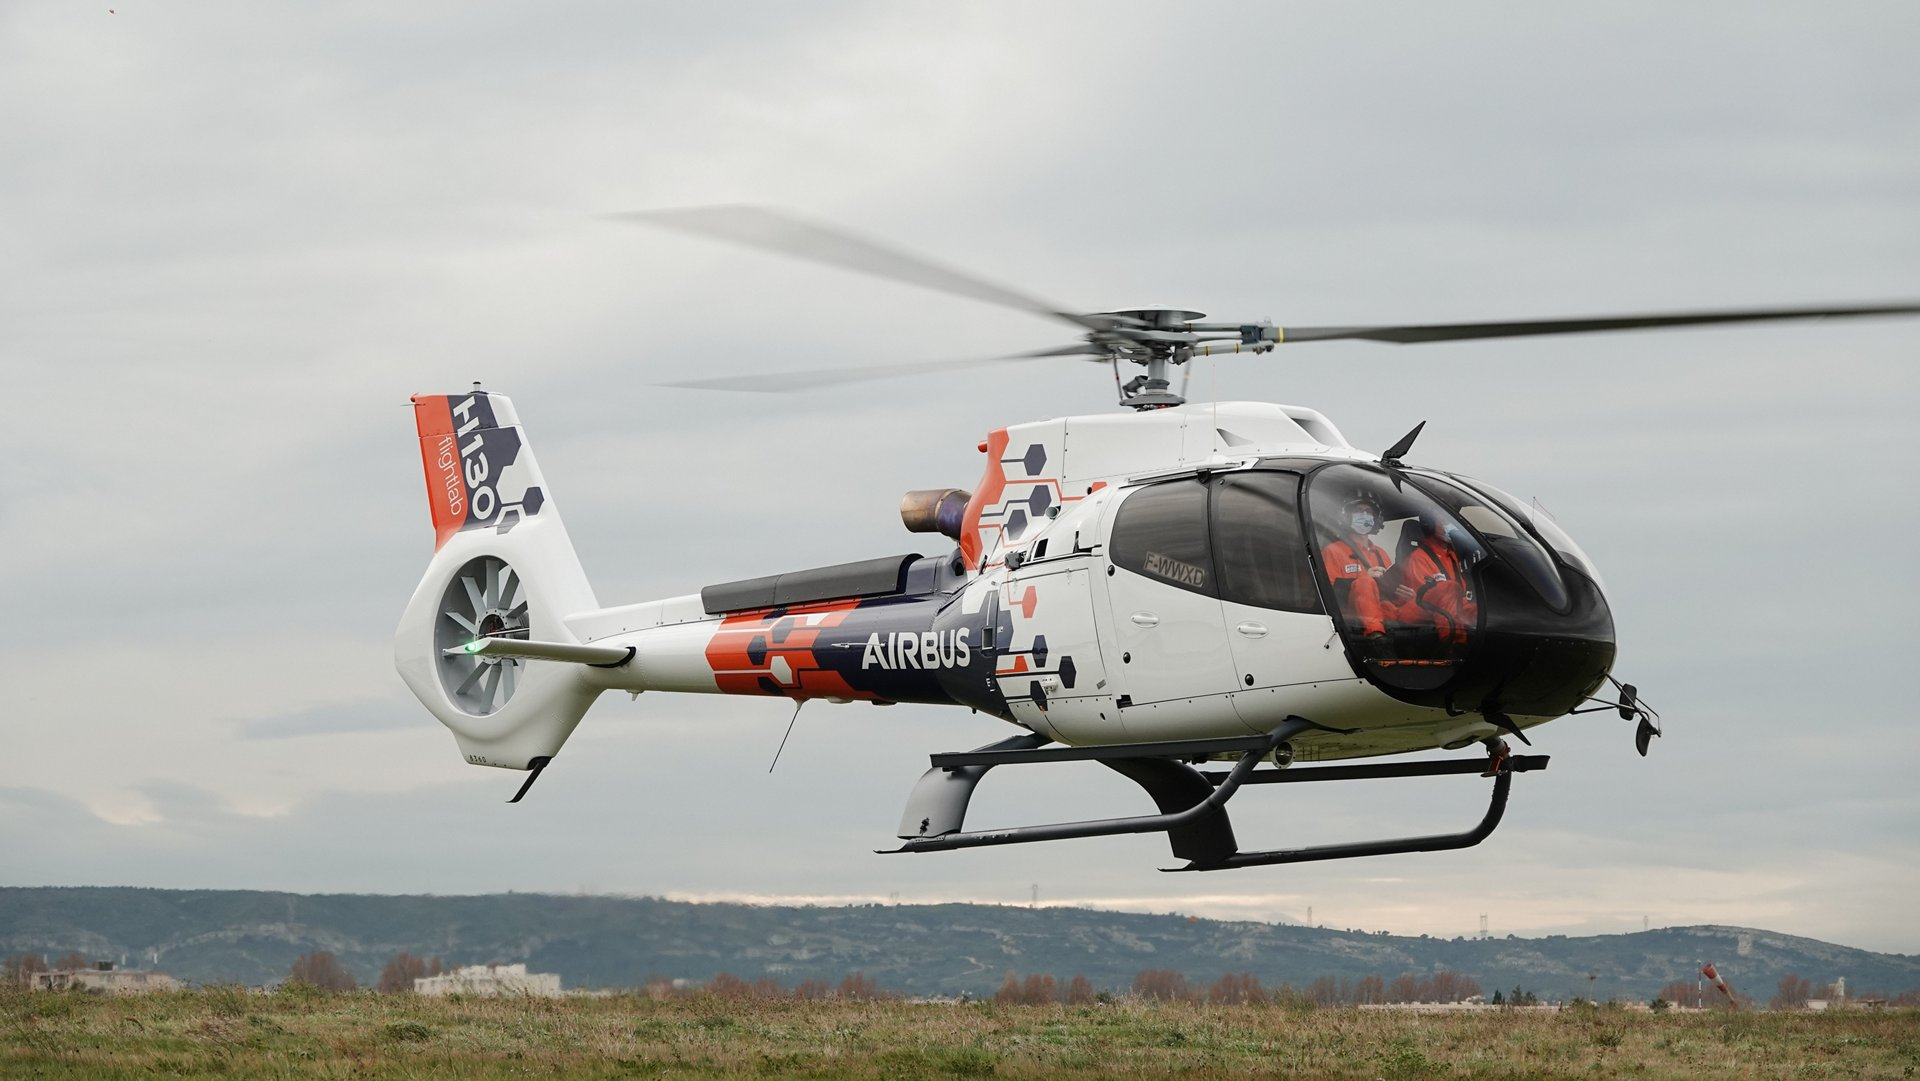 Airbus to test advanced autonomous features on helicopter Flightlab